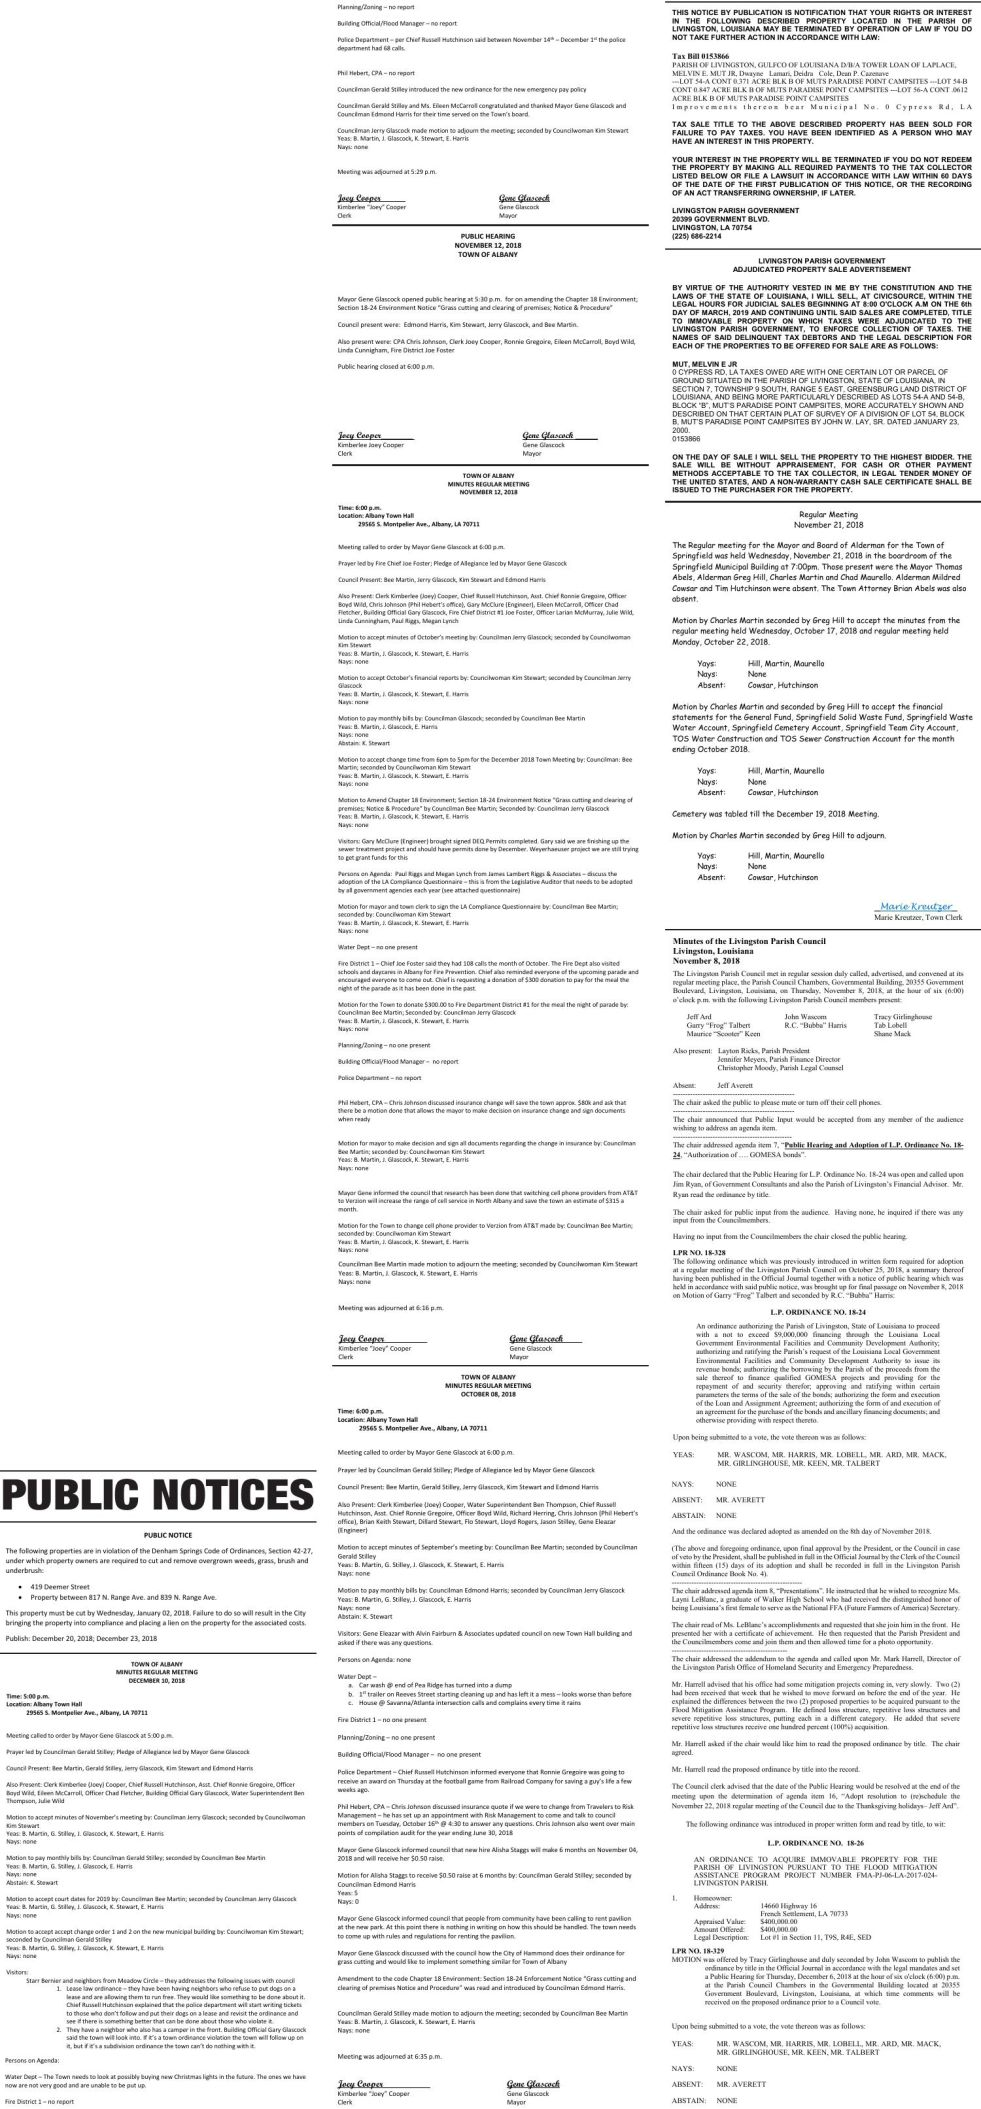 Public Notices published December 20, 2018